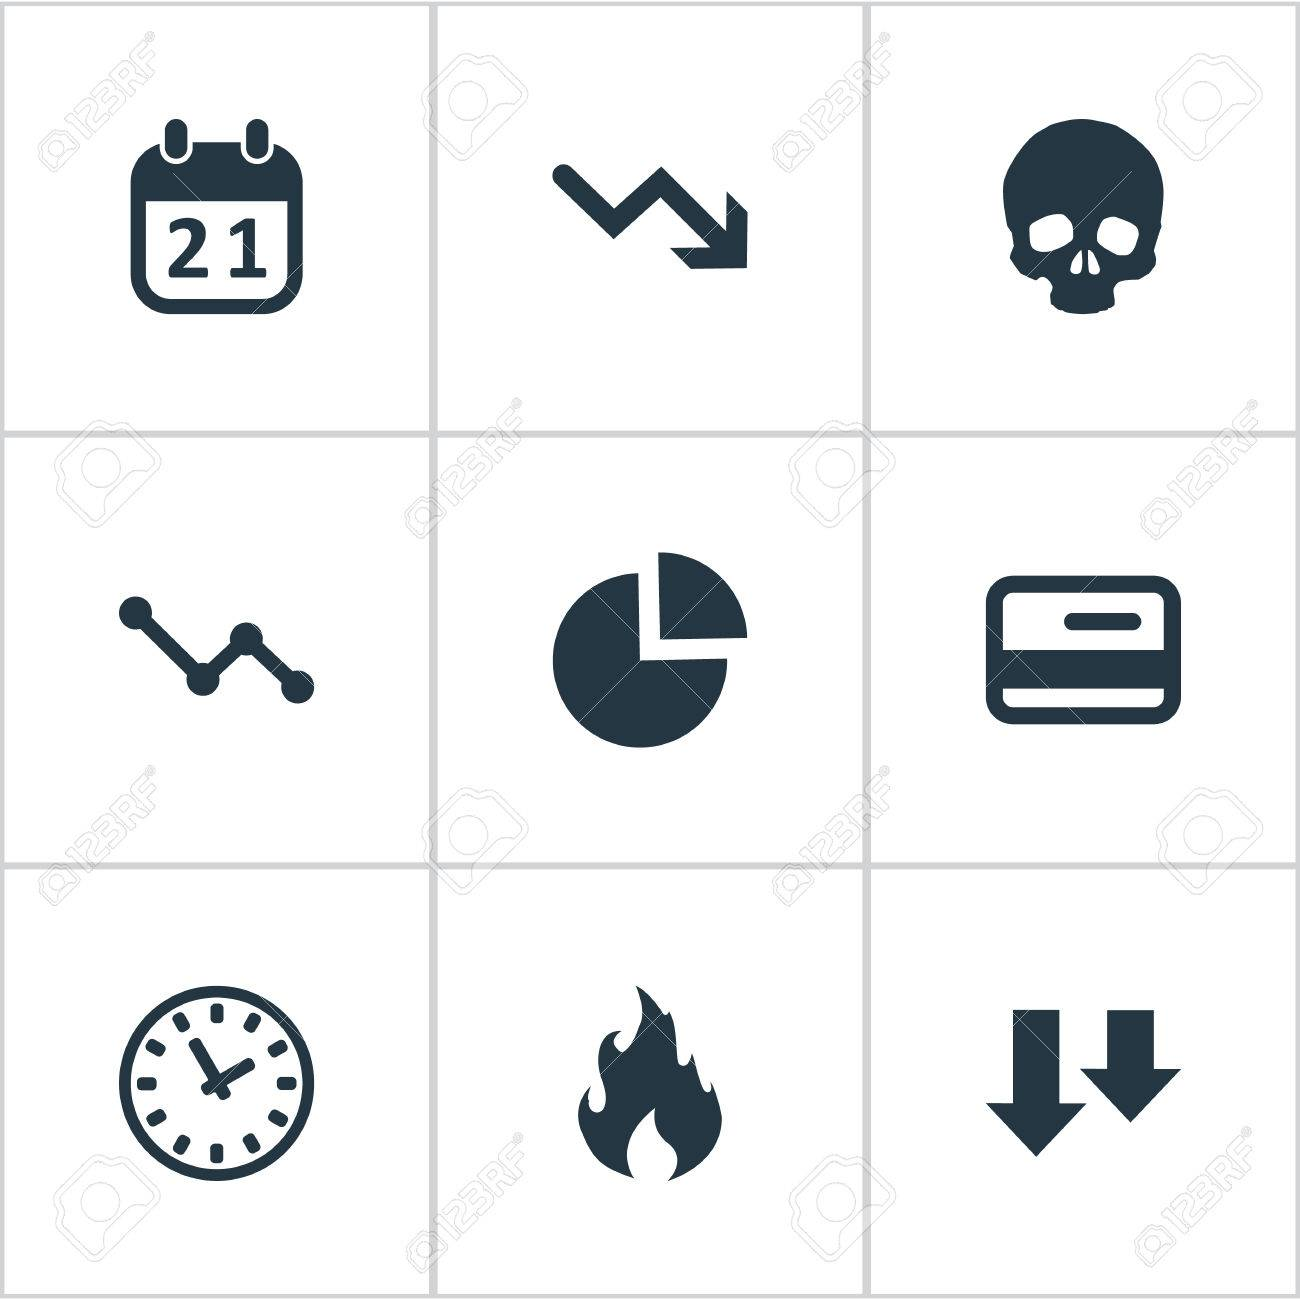 hight resolution of vector vector illustration set of simple situation icons elements circular diagram plastic card clock and other synonyms chart arrows and fire